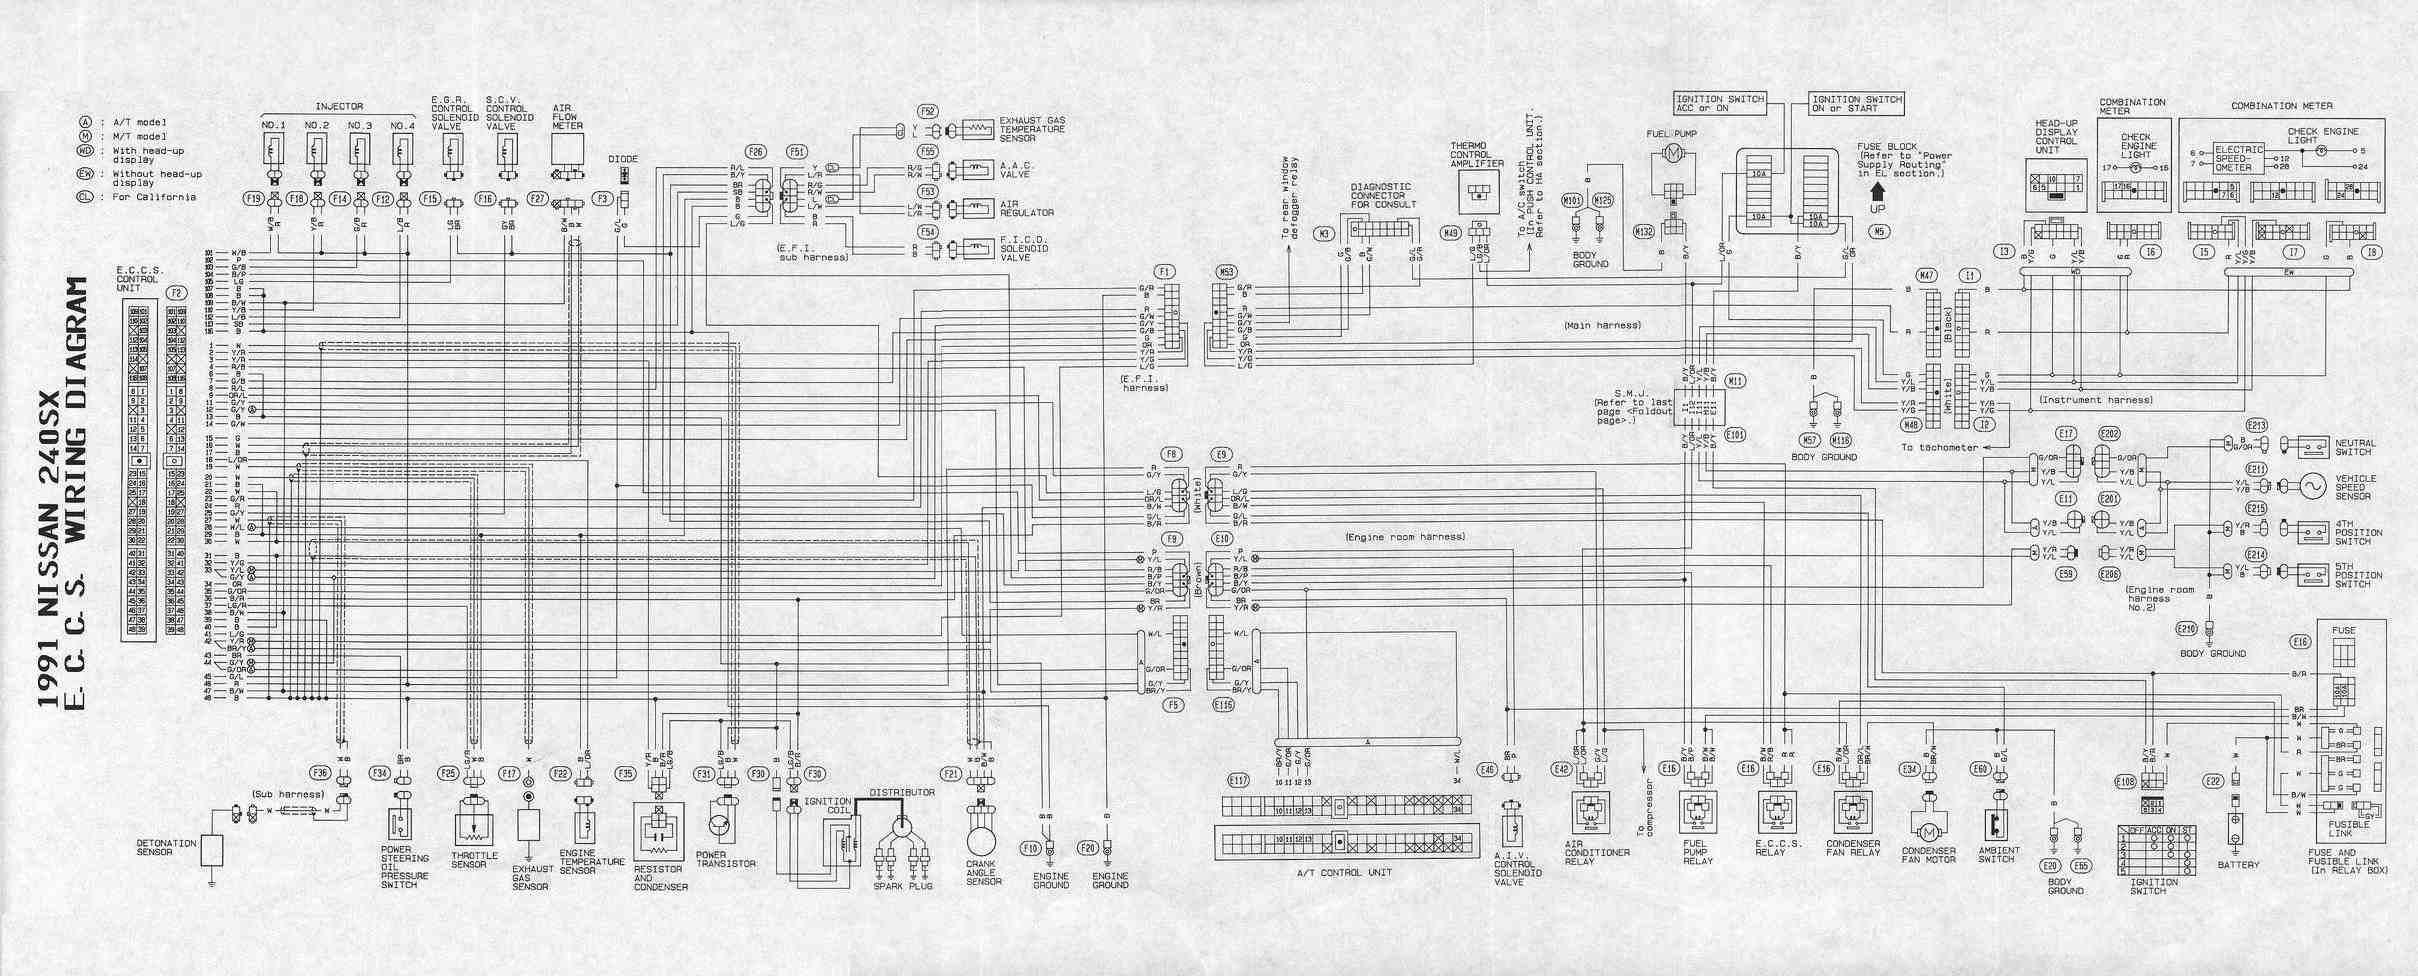 93 nissan 240sx fuse box diagram wiring diagram rh 48 yoga neuwied de